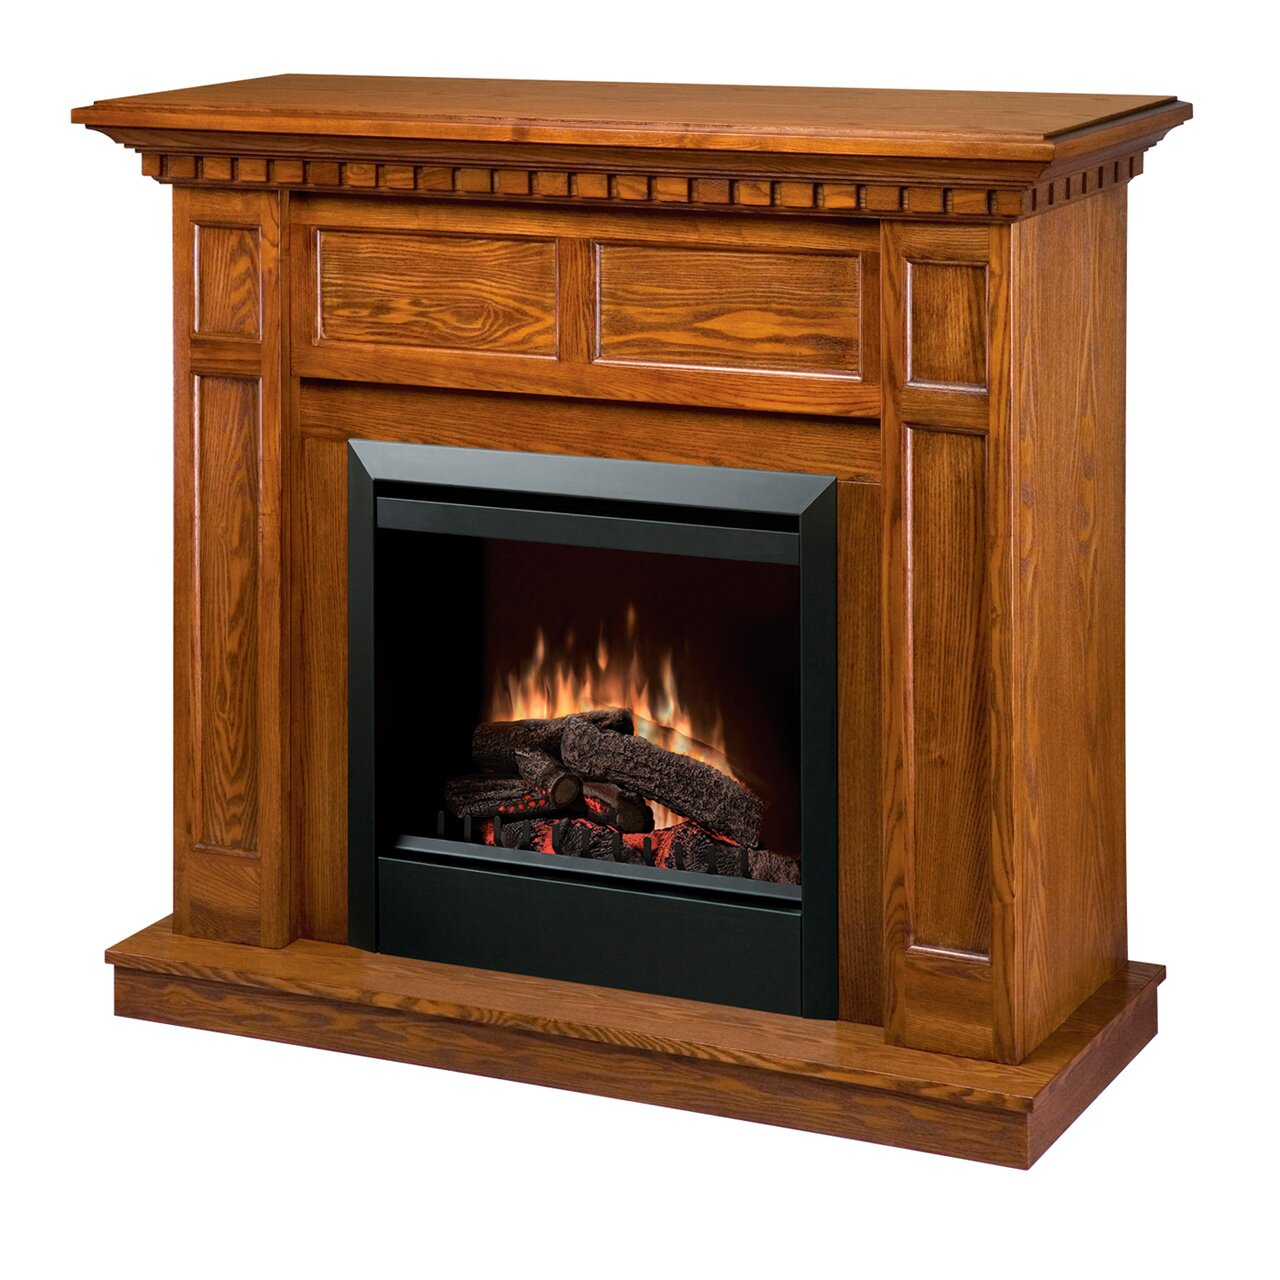 Electraflame Caprice Electric Fireplace - Dimplex Electric Fireplaces You'll Love Wayfair